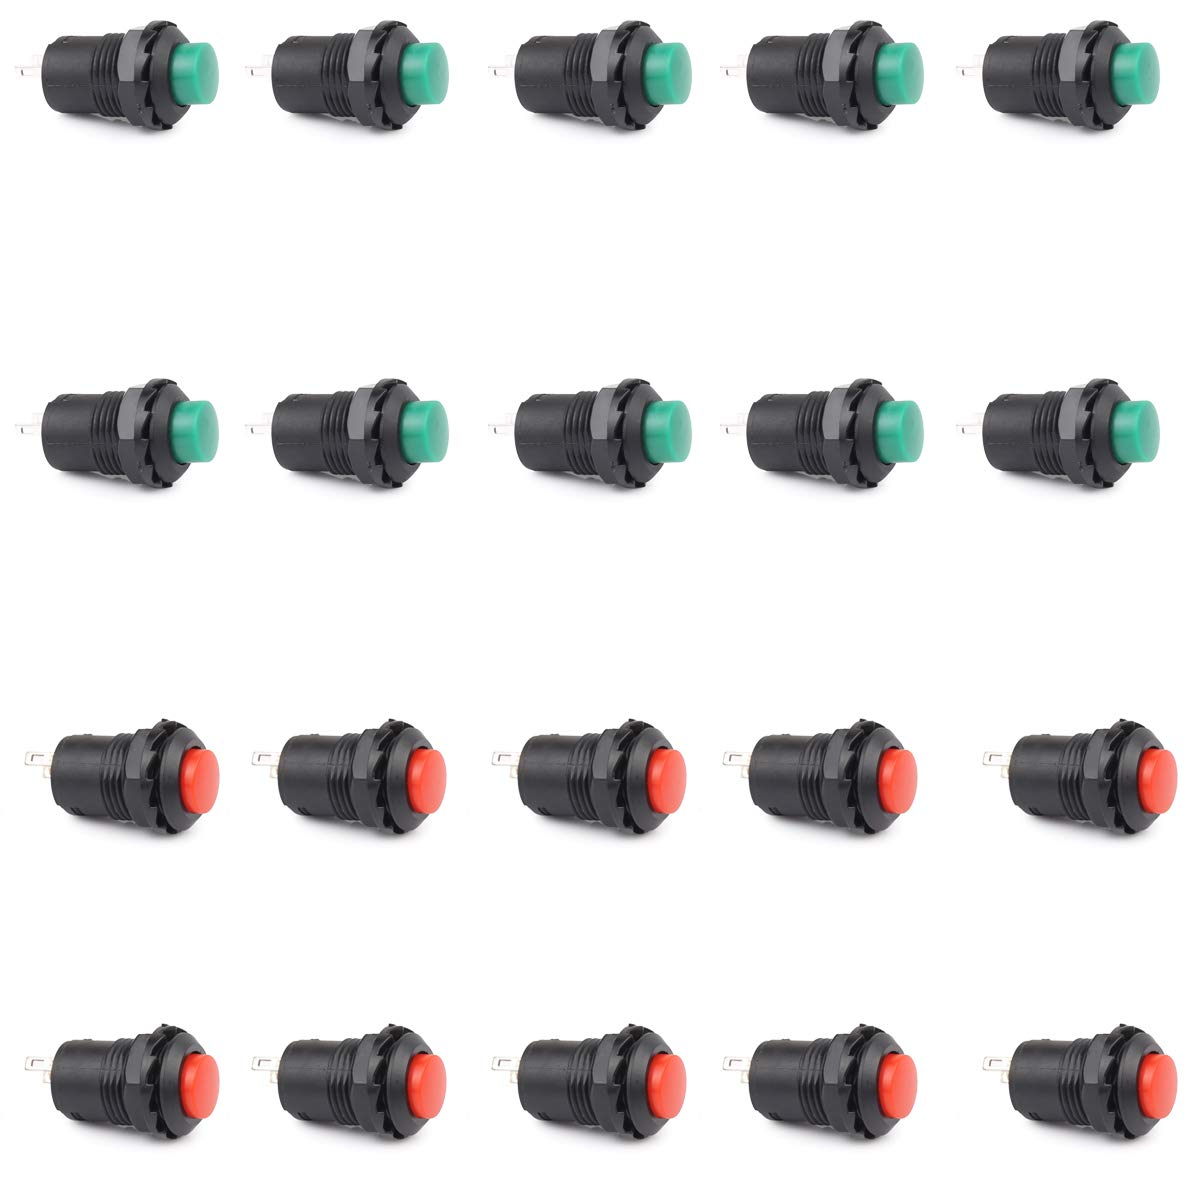 5 x Green Round 12mm Push Button Switch Momentary NO Normal Open OFF-ON 2 Pin